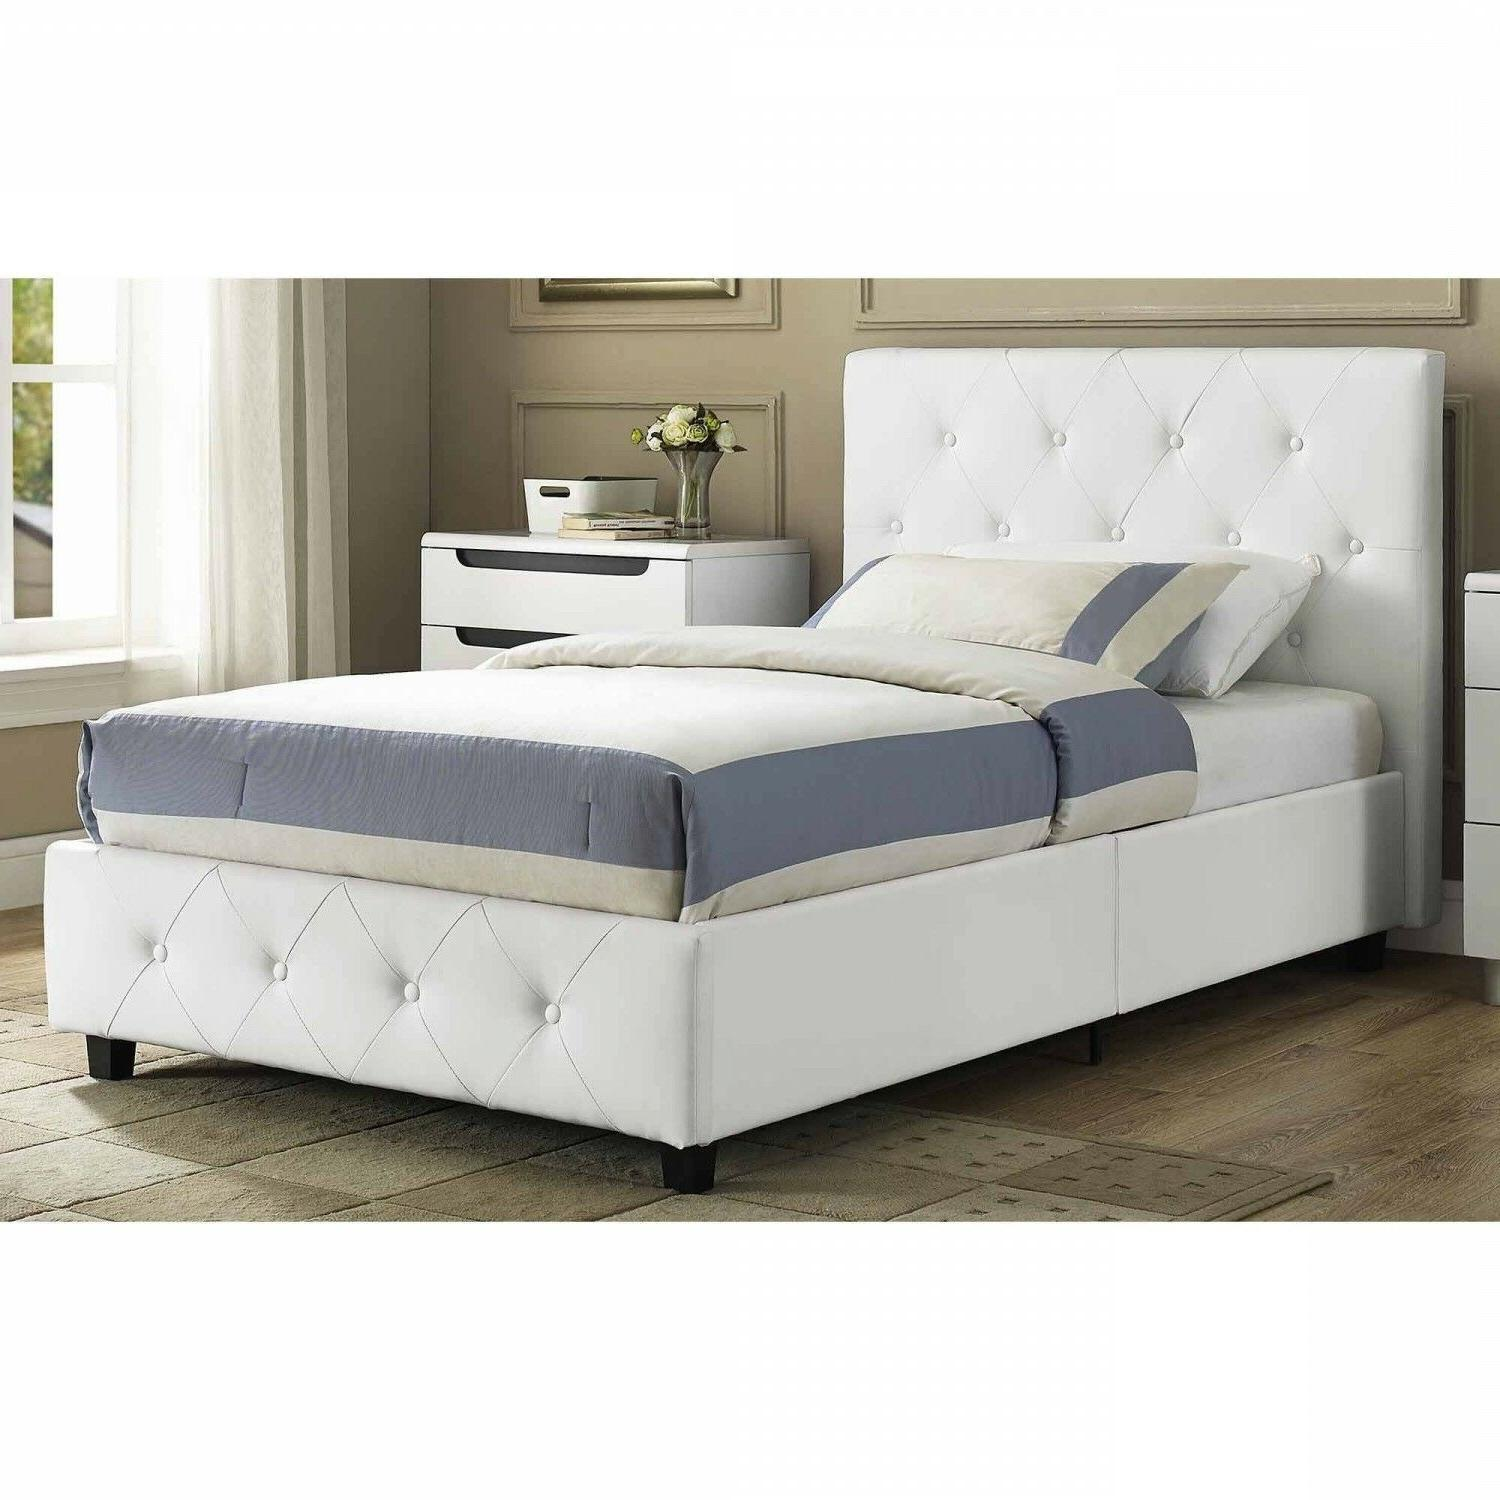 headboard upholstered bed faux leather white tufted